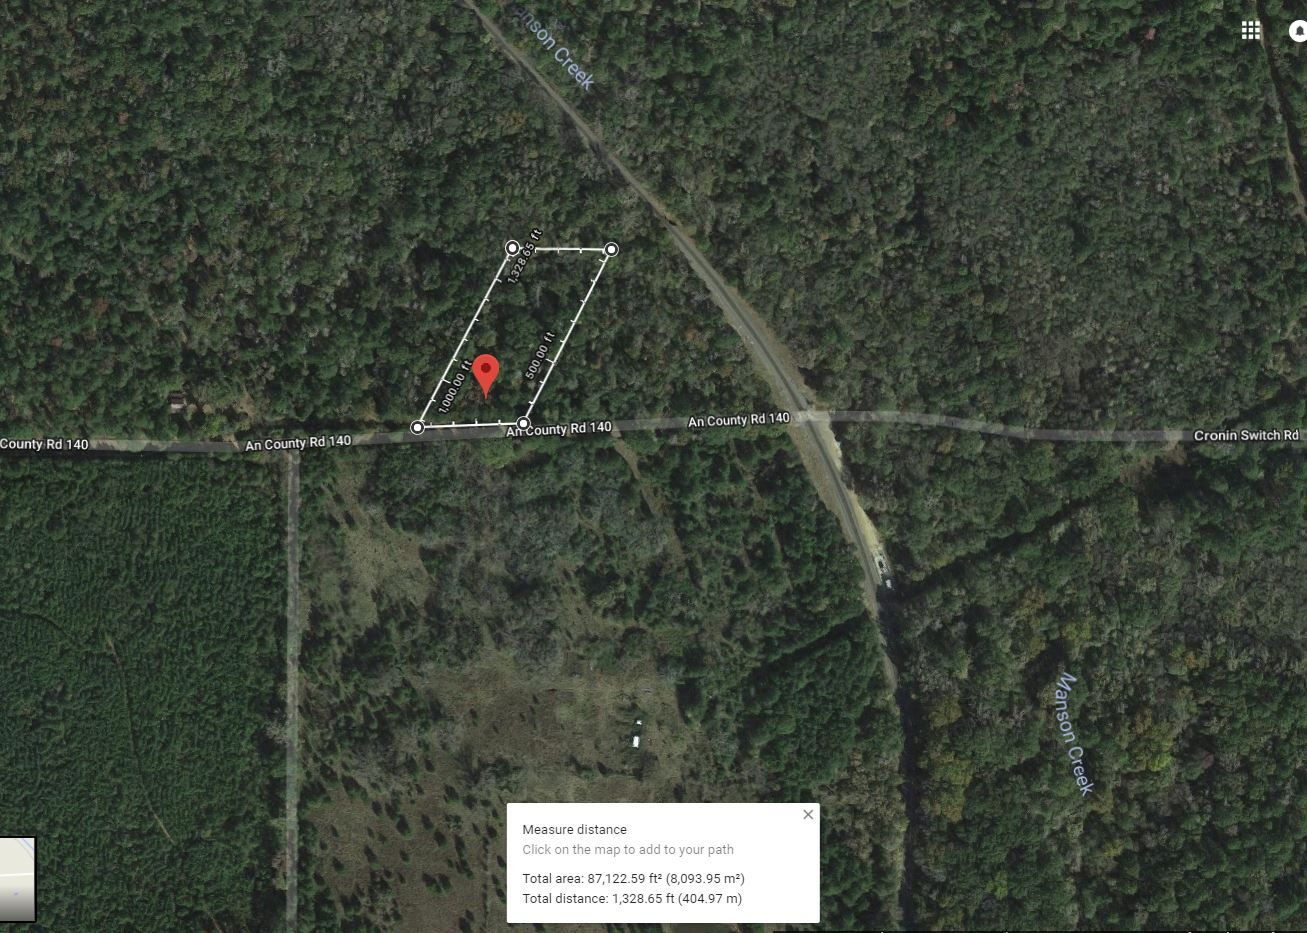 Map Of Palestine Tx 75801.140 Anderson County Rd Palestine Tx 3 Photos Trulia